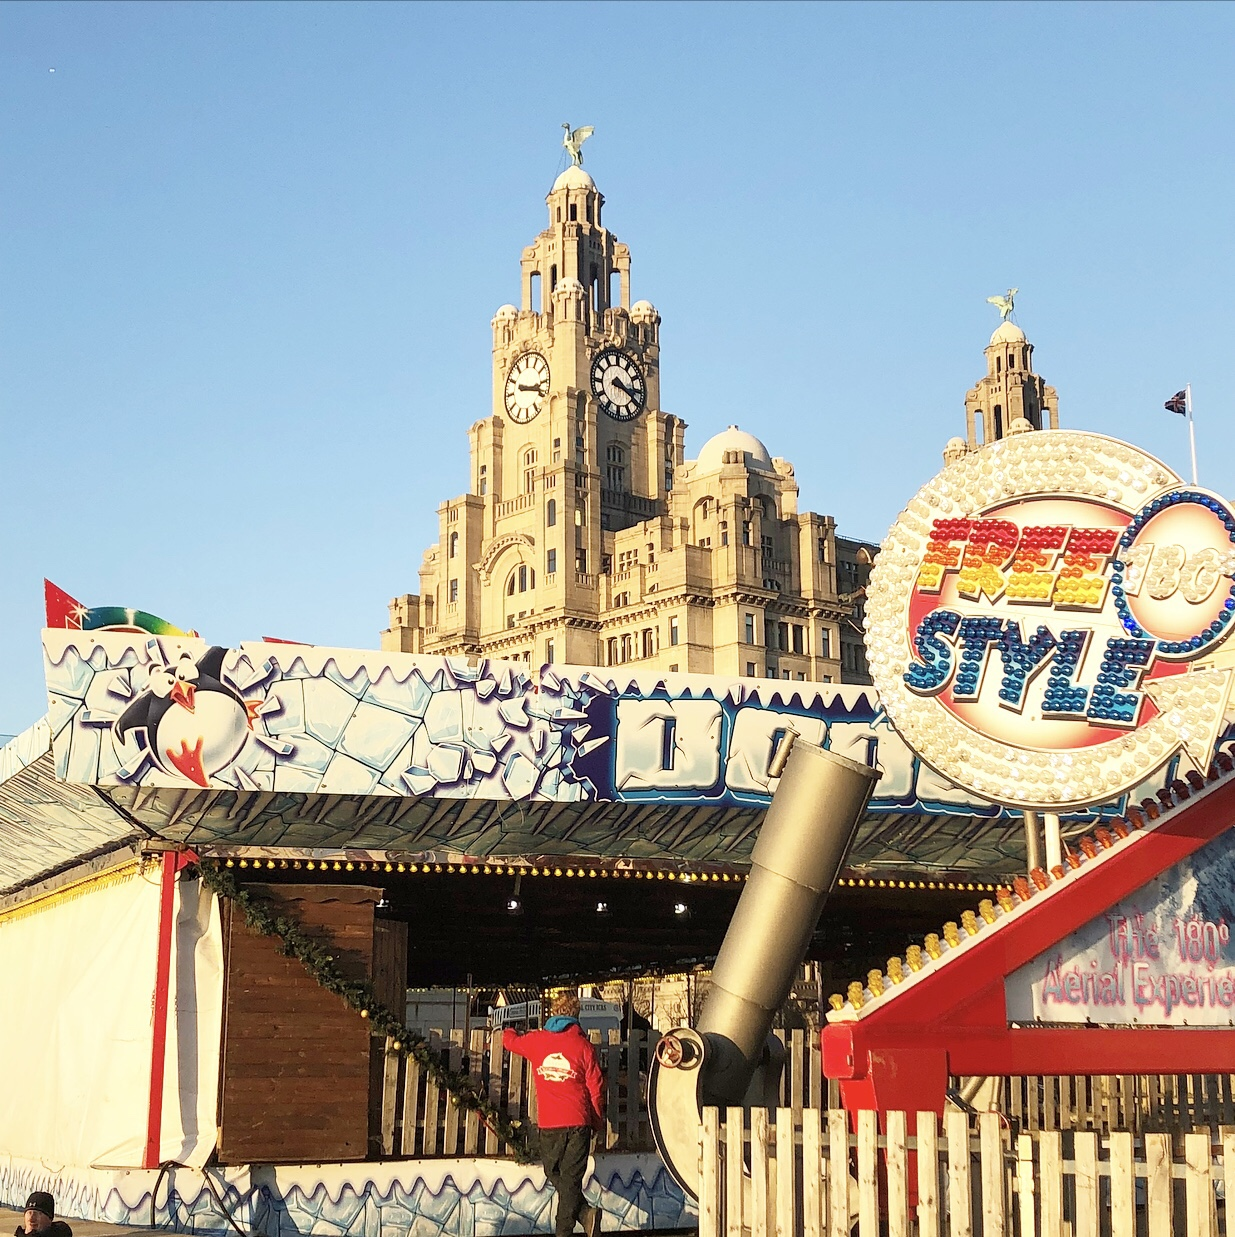 Exploring Liverpool - The Pier Head